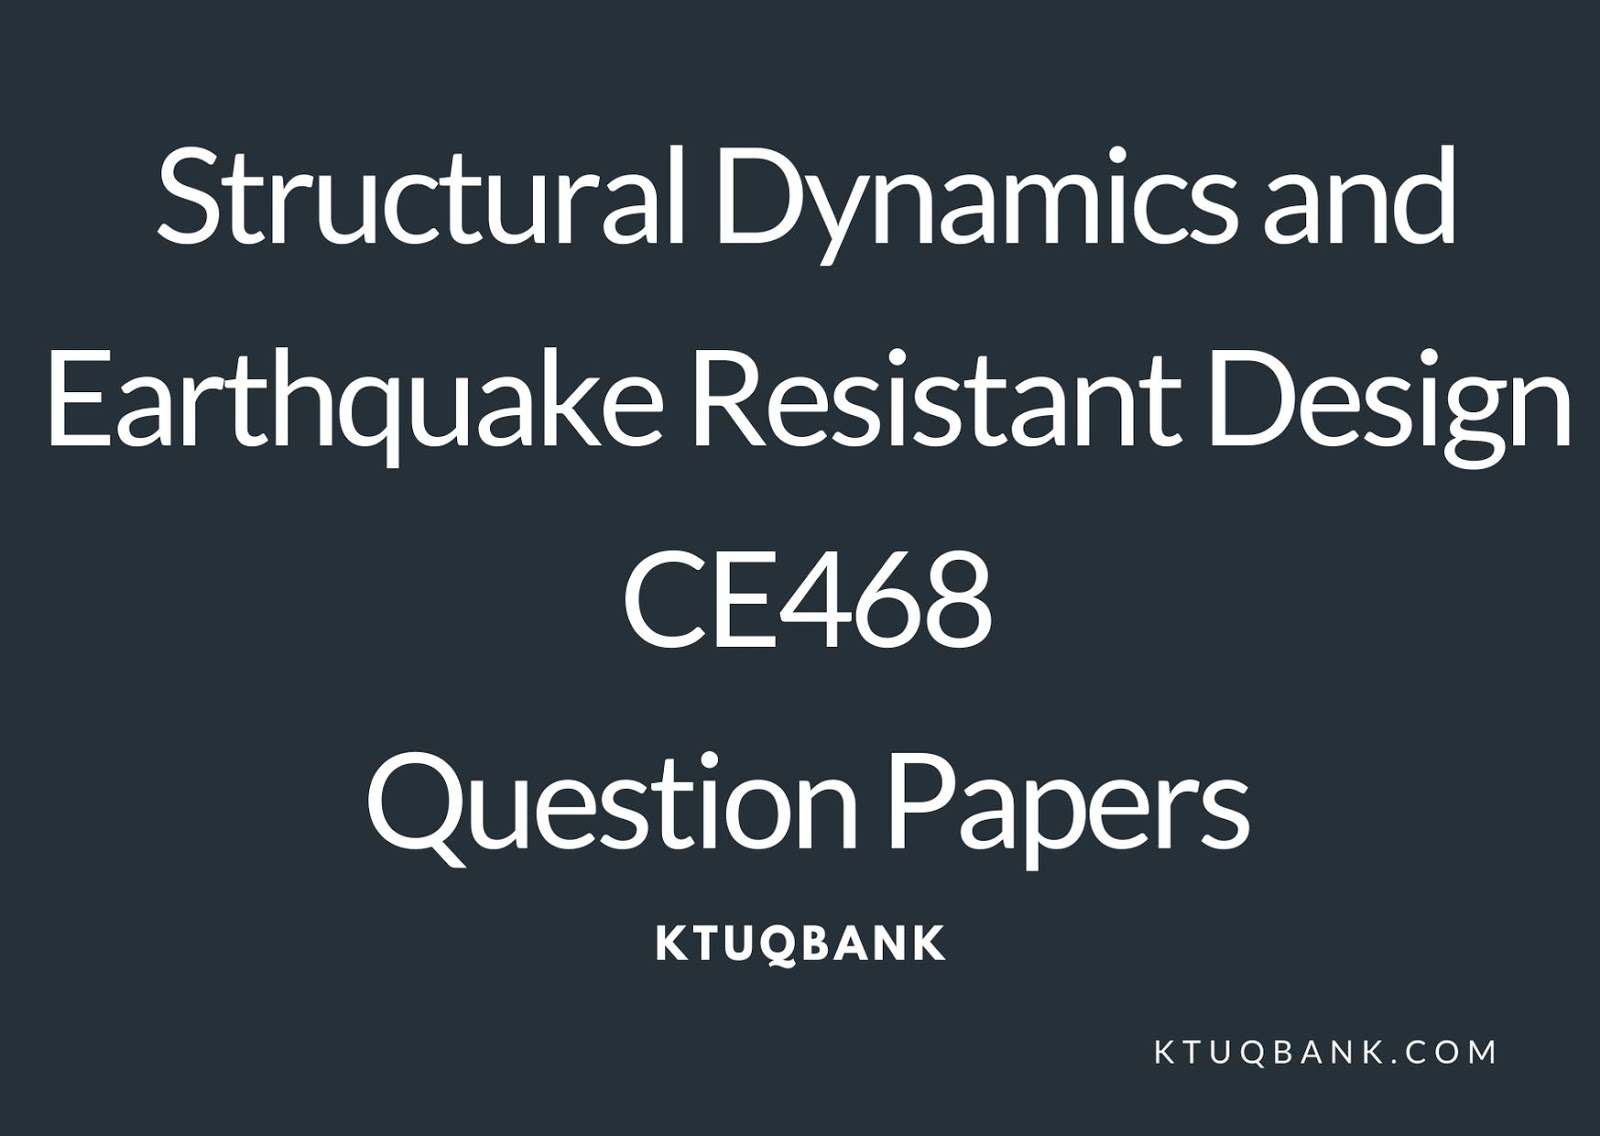 Structural Dynamics and Earthquake Resistant Design | CE468 | Question Papers (2015 batch)